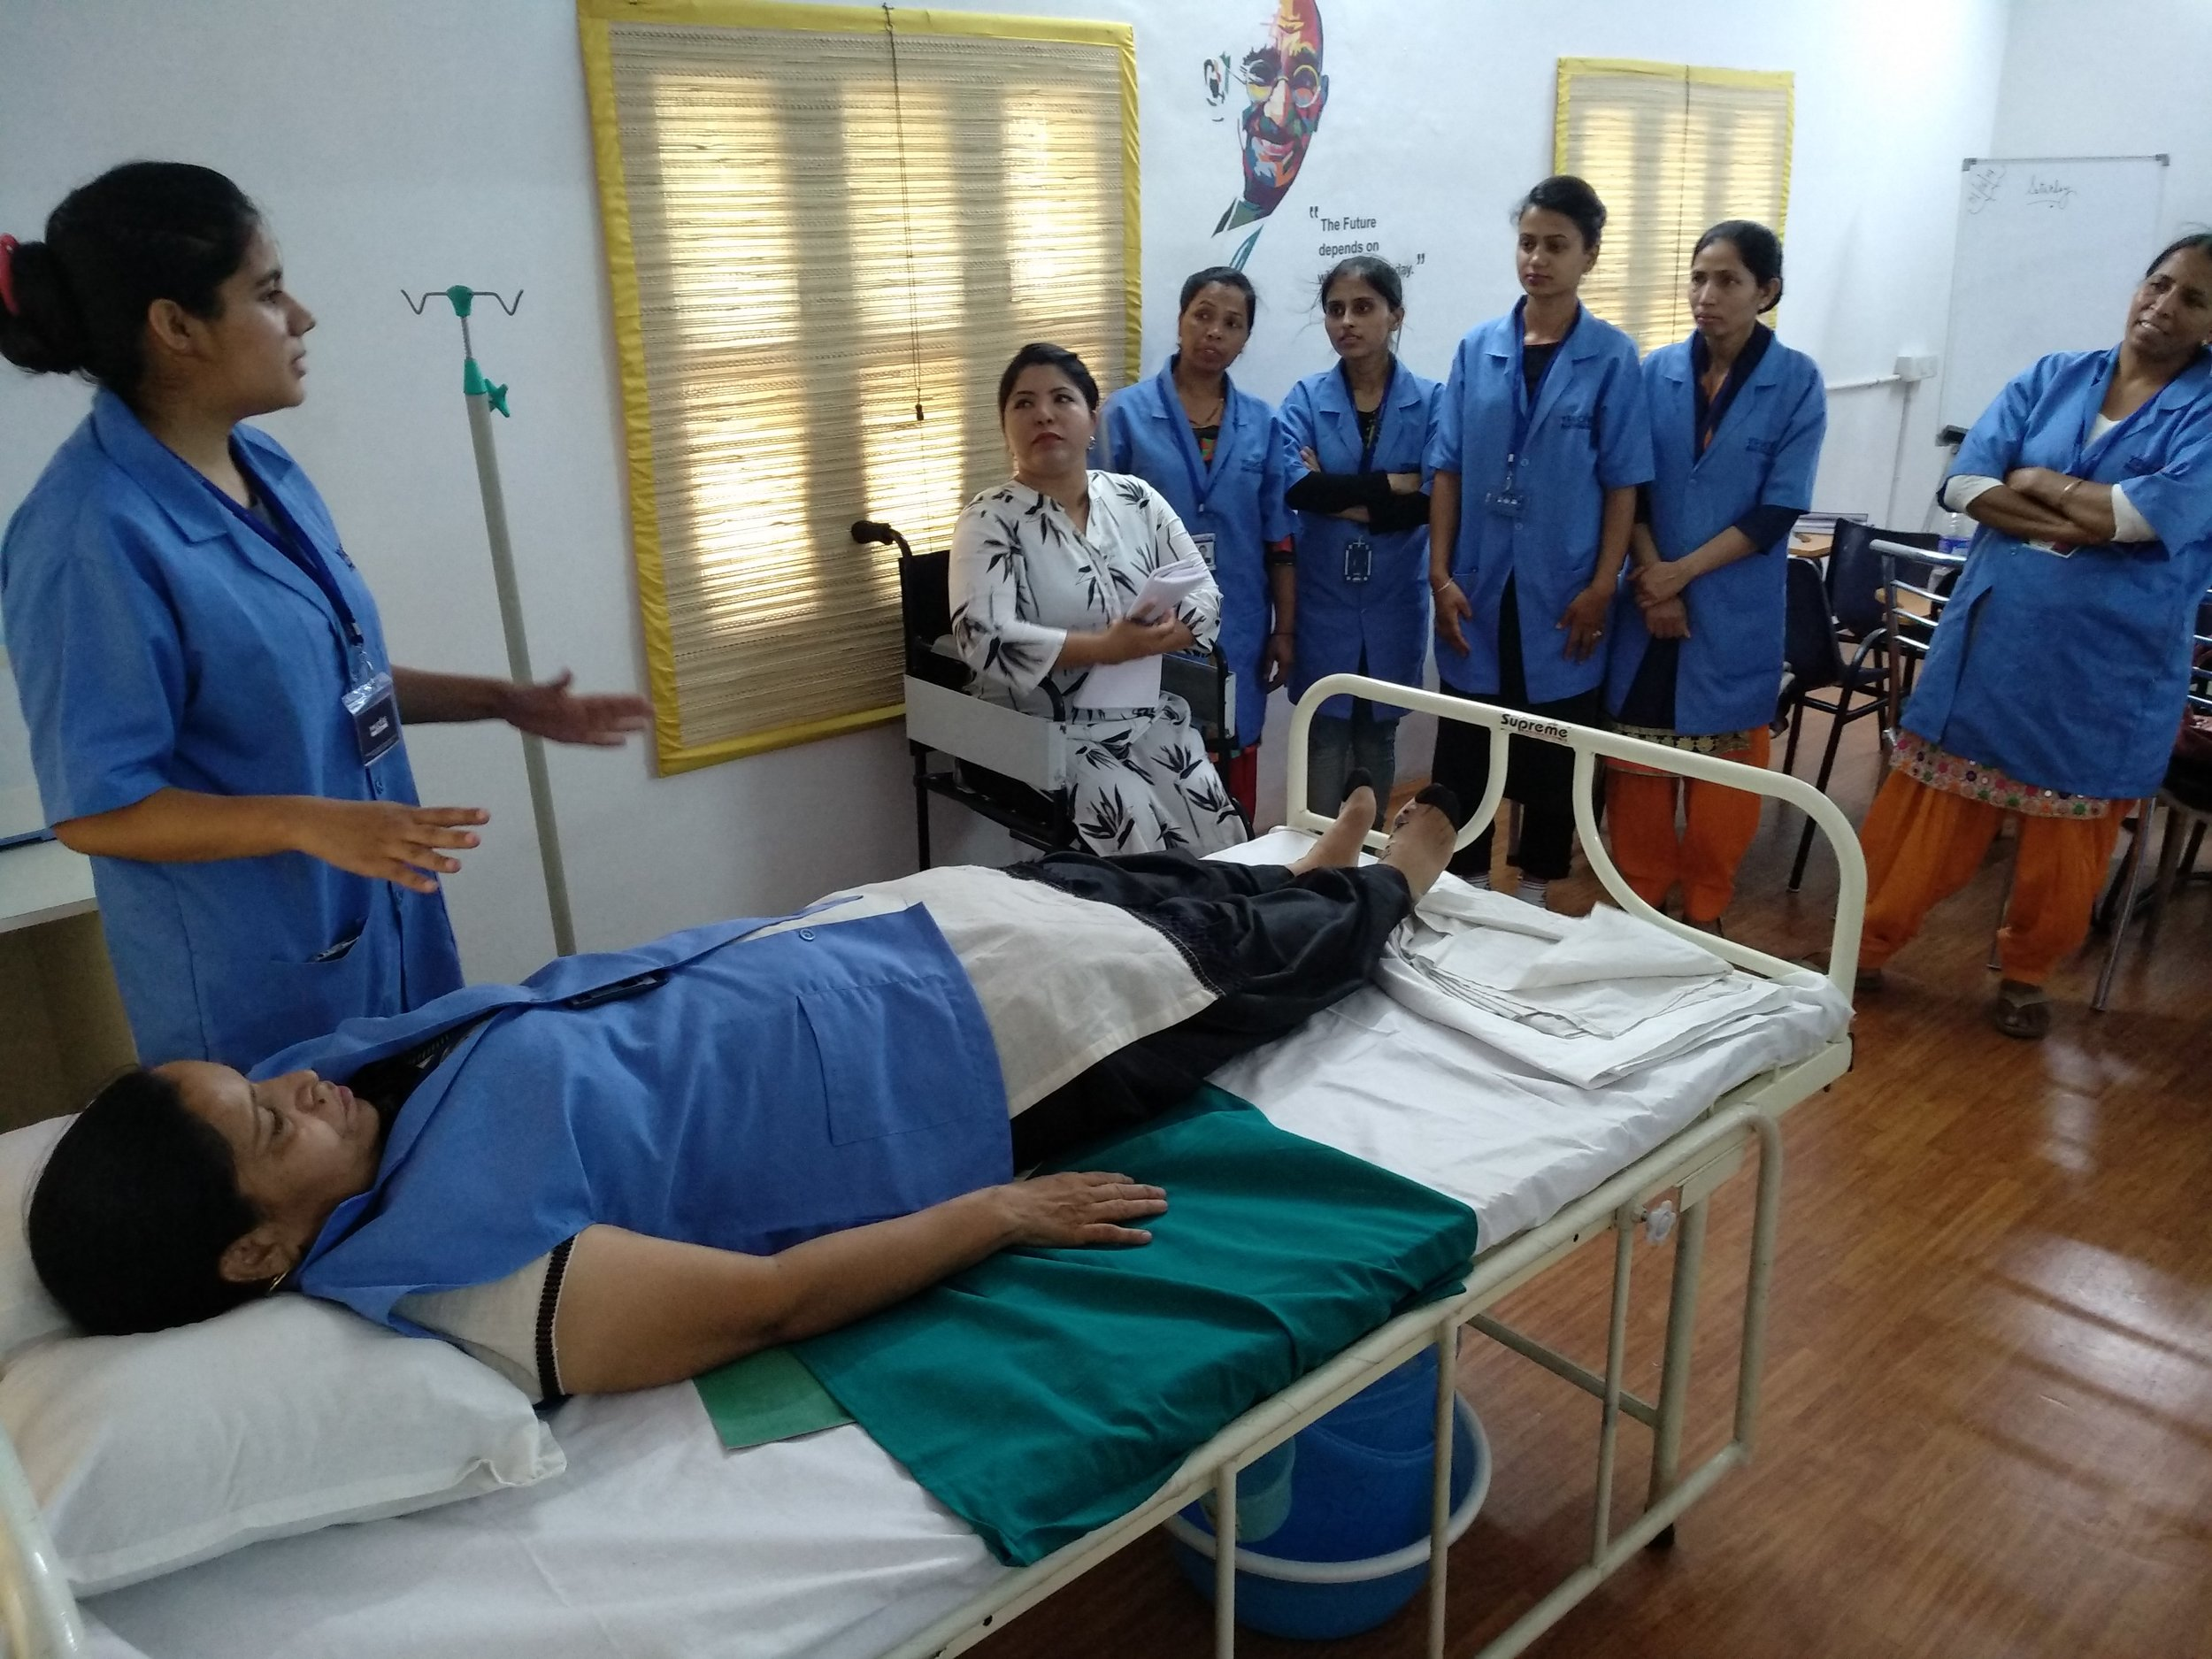 Students participate in a training session at YouCare's training facility.